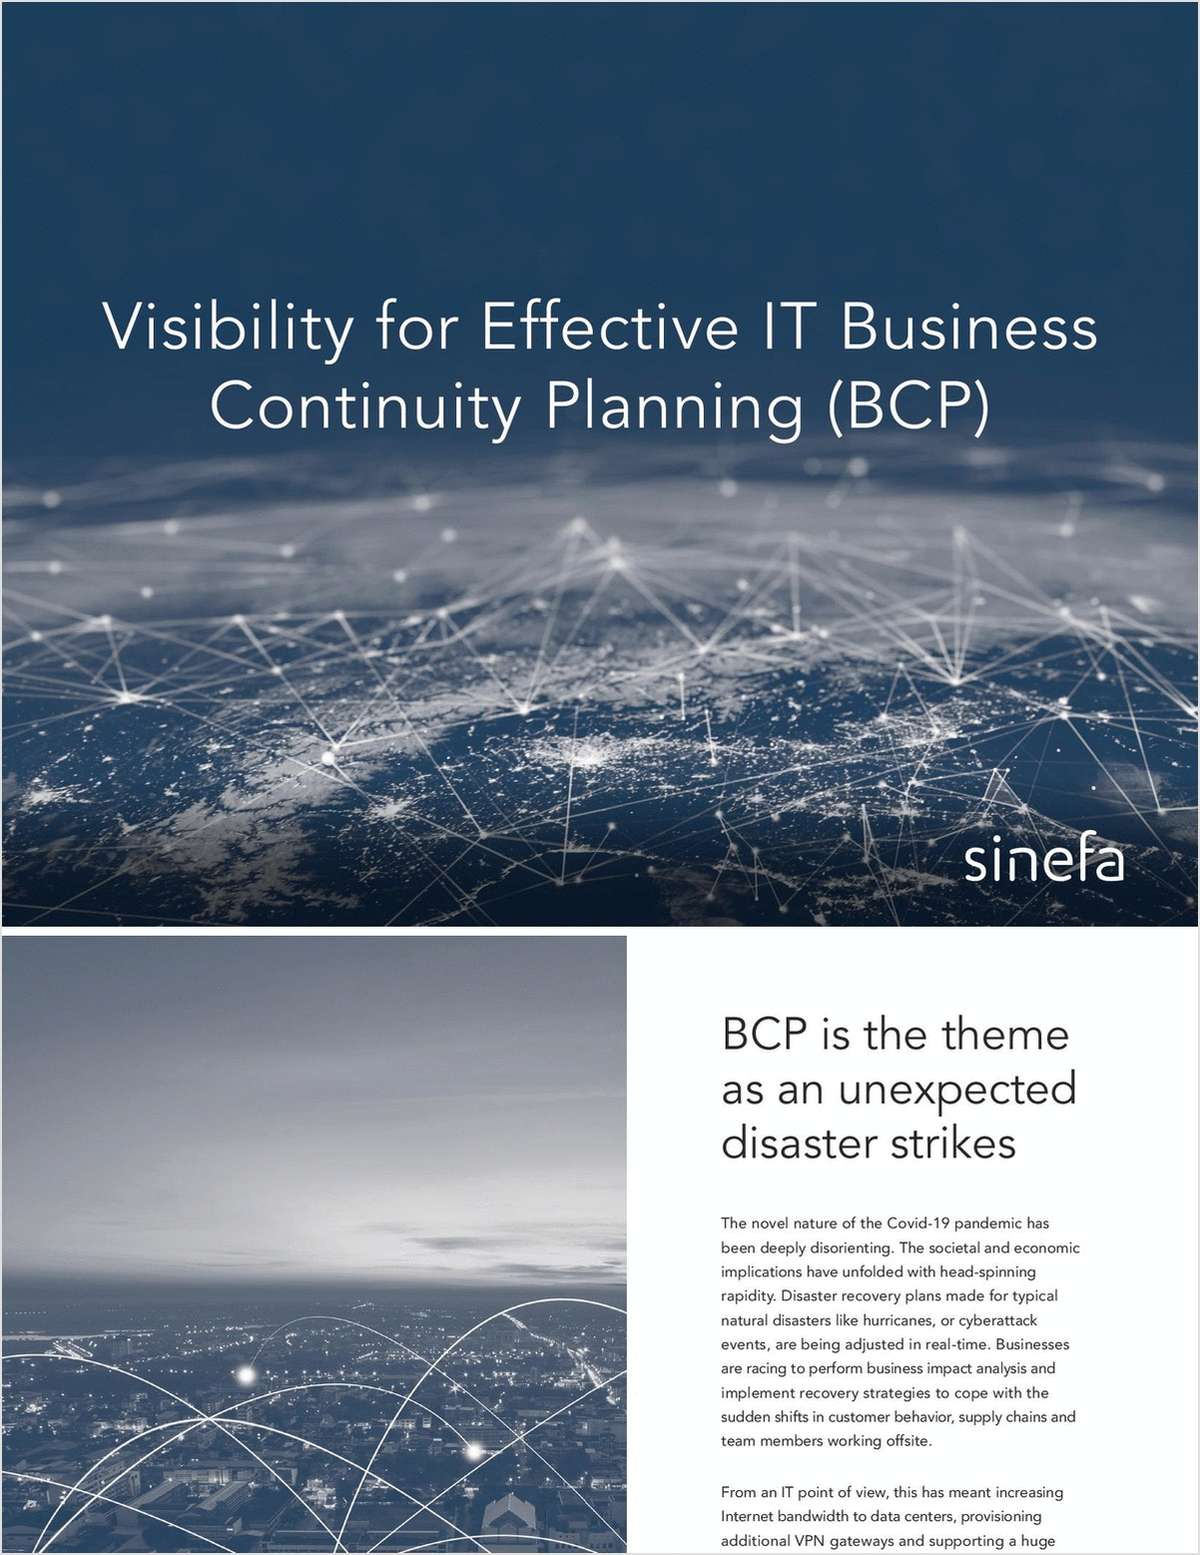 Visibility for Effective IT Business Continuity Planning